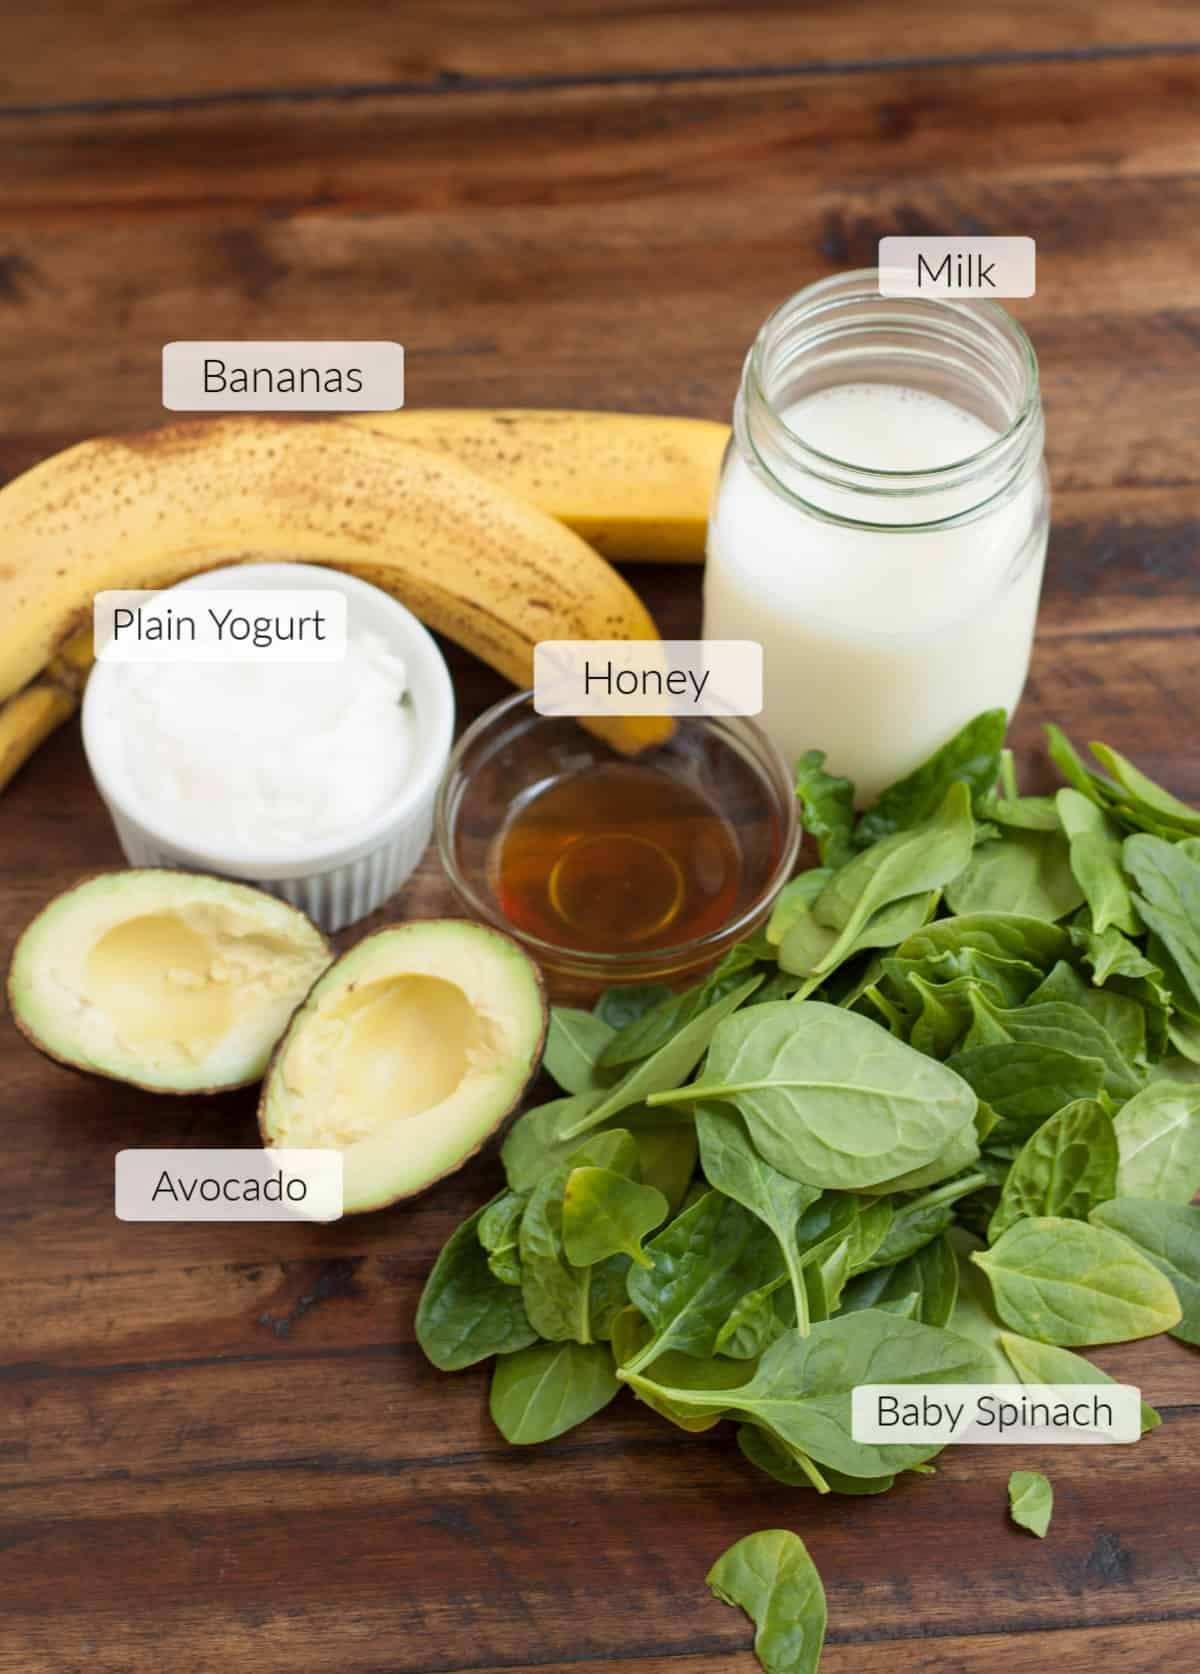 Ingredients for a Banana Spinach Avocado smoothie with labels for each.